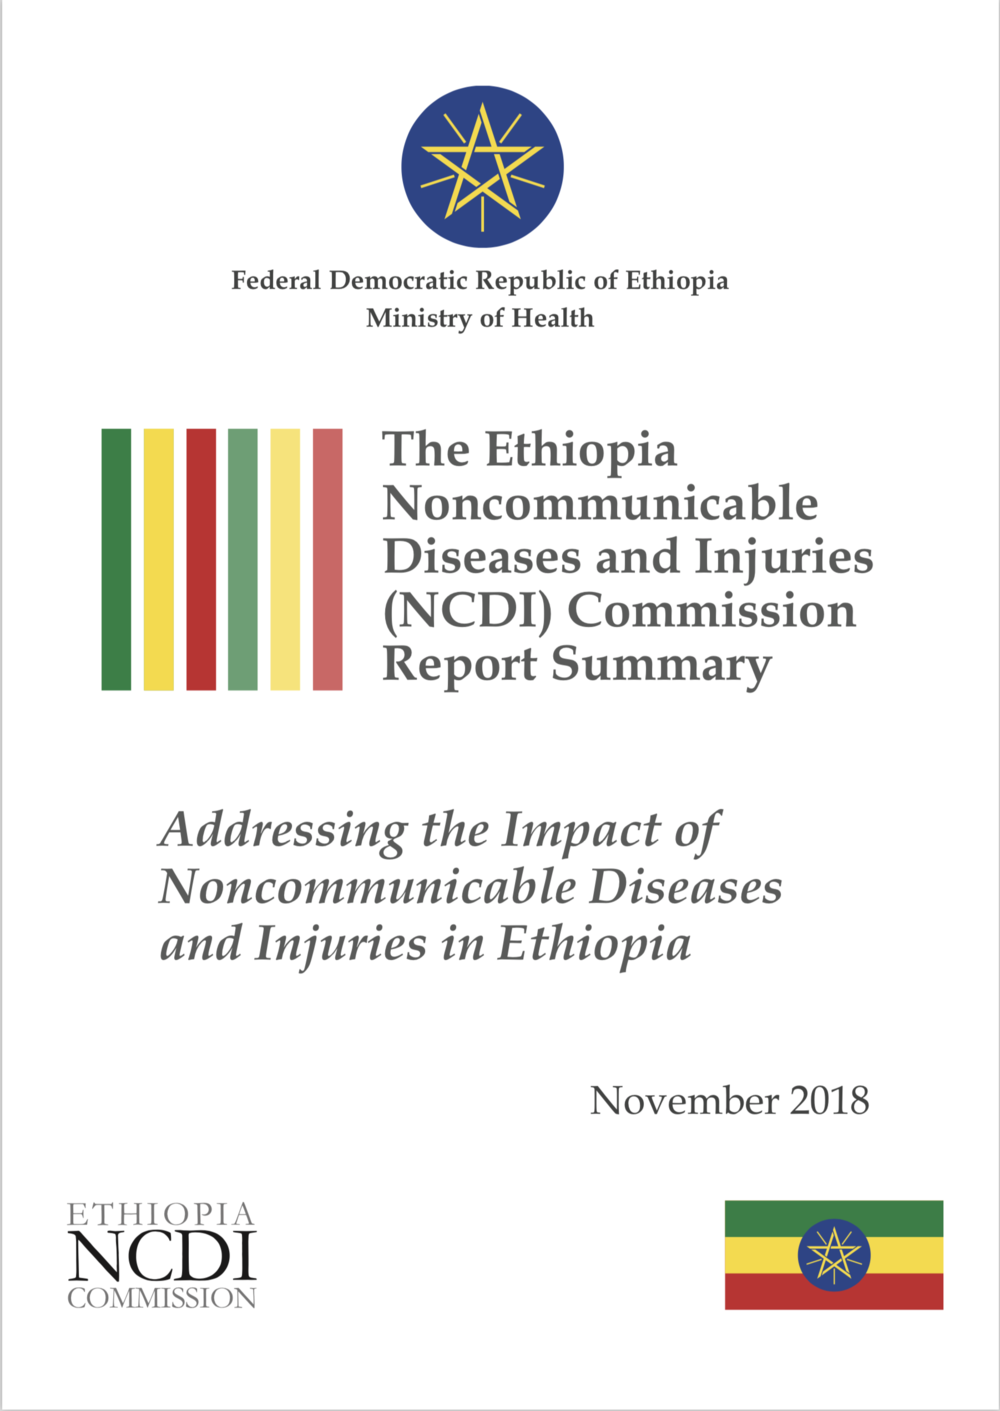 Ethiopia NCDI Commission Report Summary